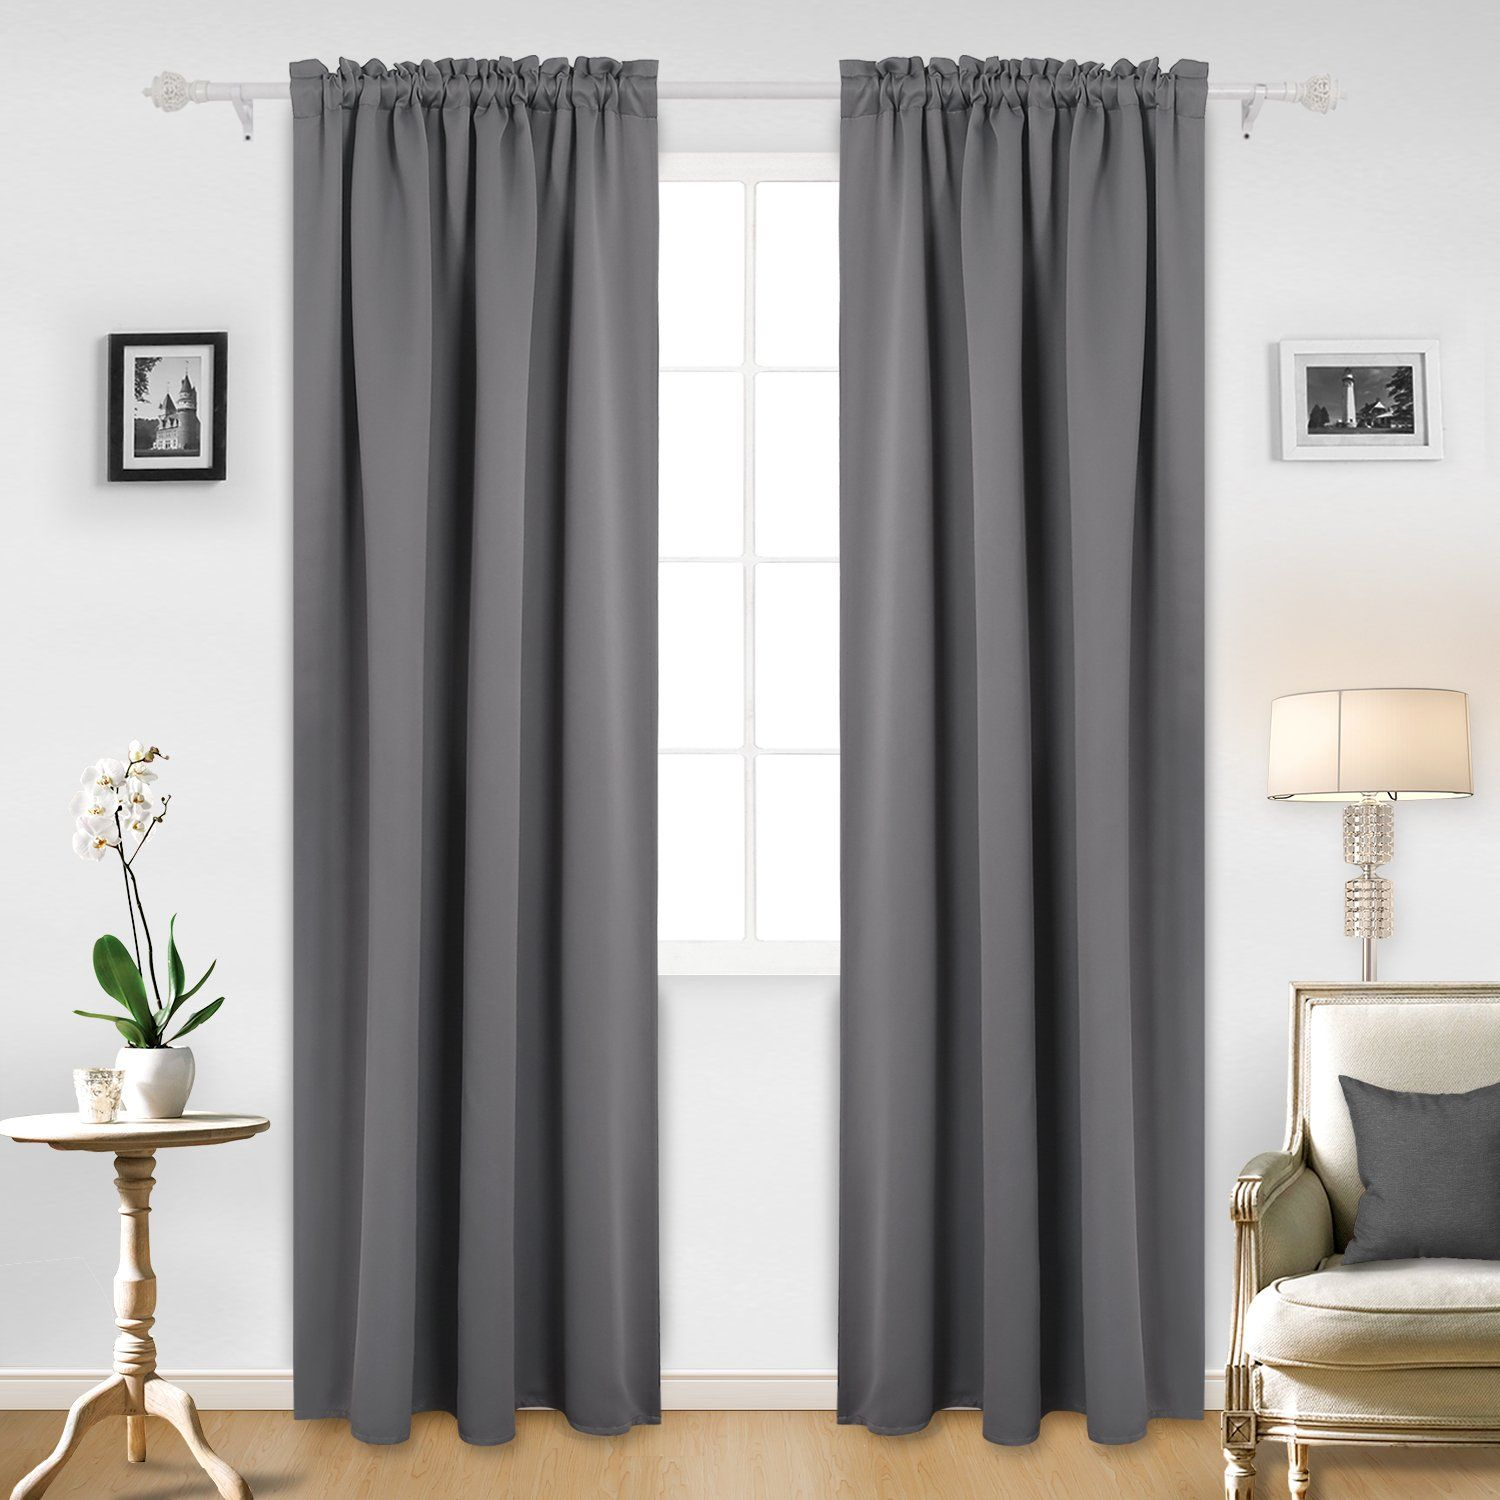 white curtains color efficiency com silky amazon dp of performance insulated window thermal drapery flamingo blackout grommet p energy curtain set lined